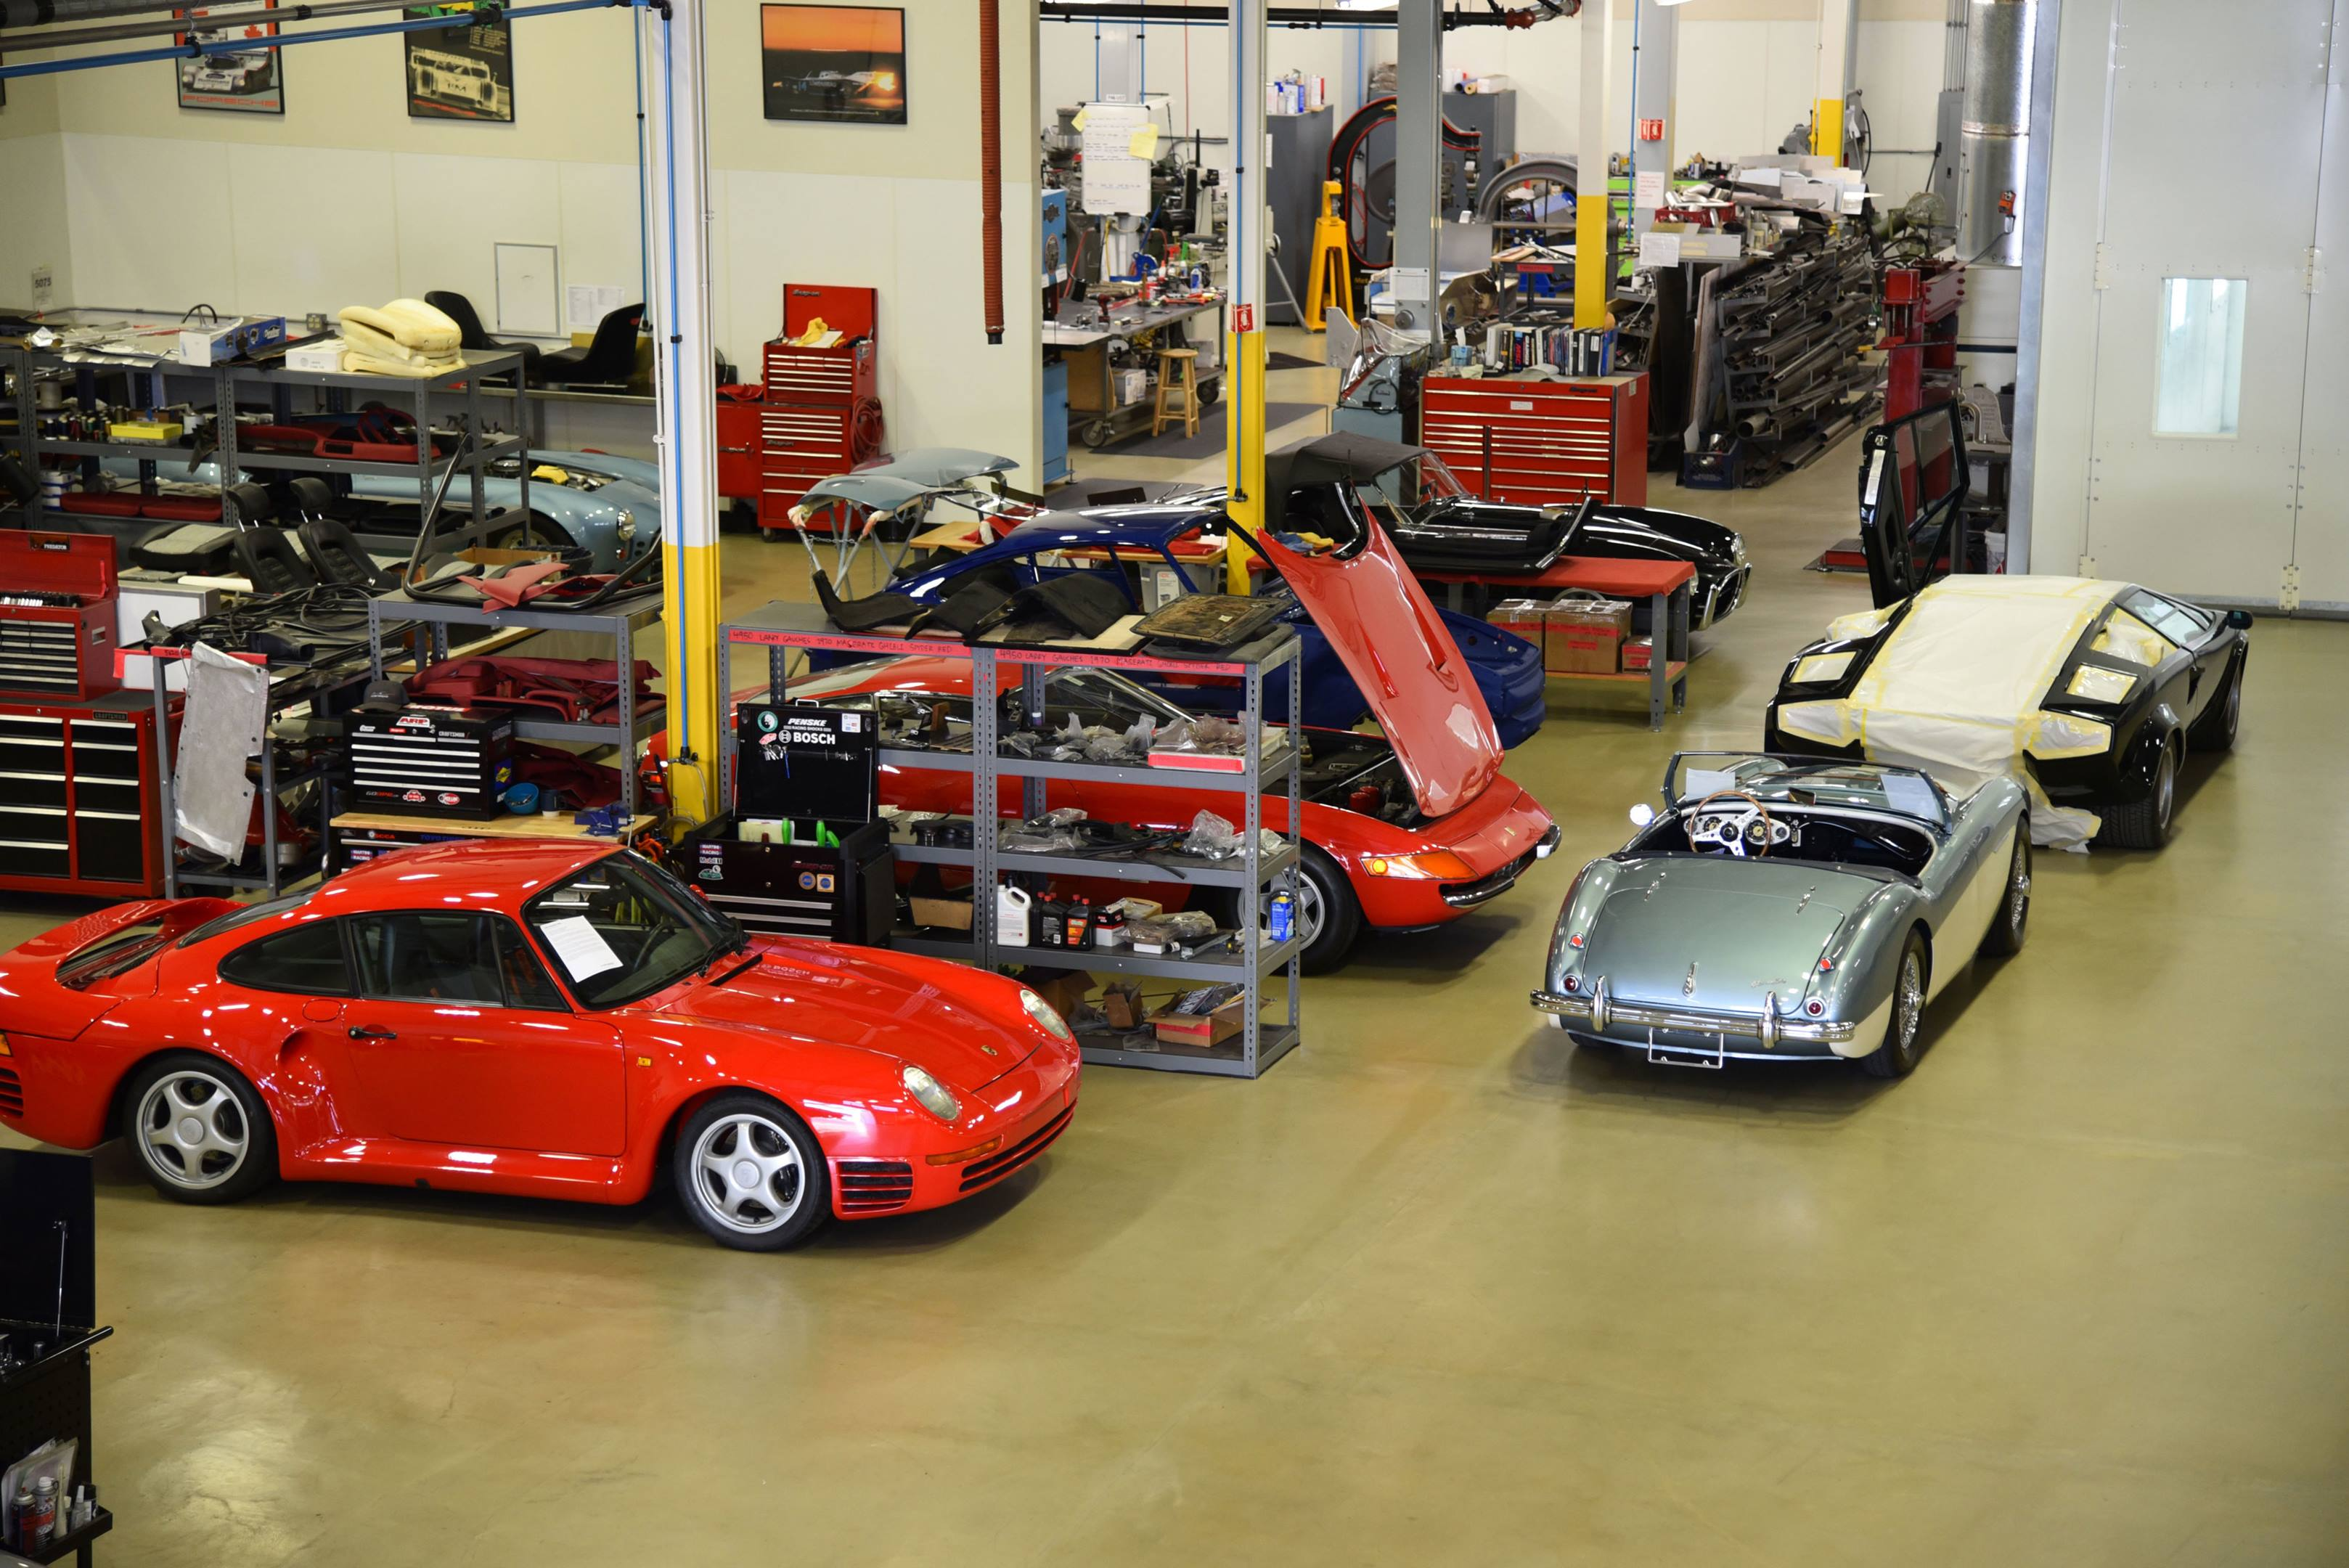 Canepa garage with Porsche 959